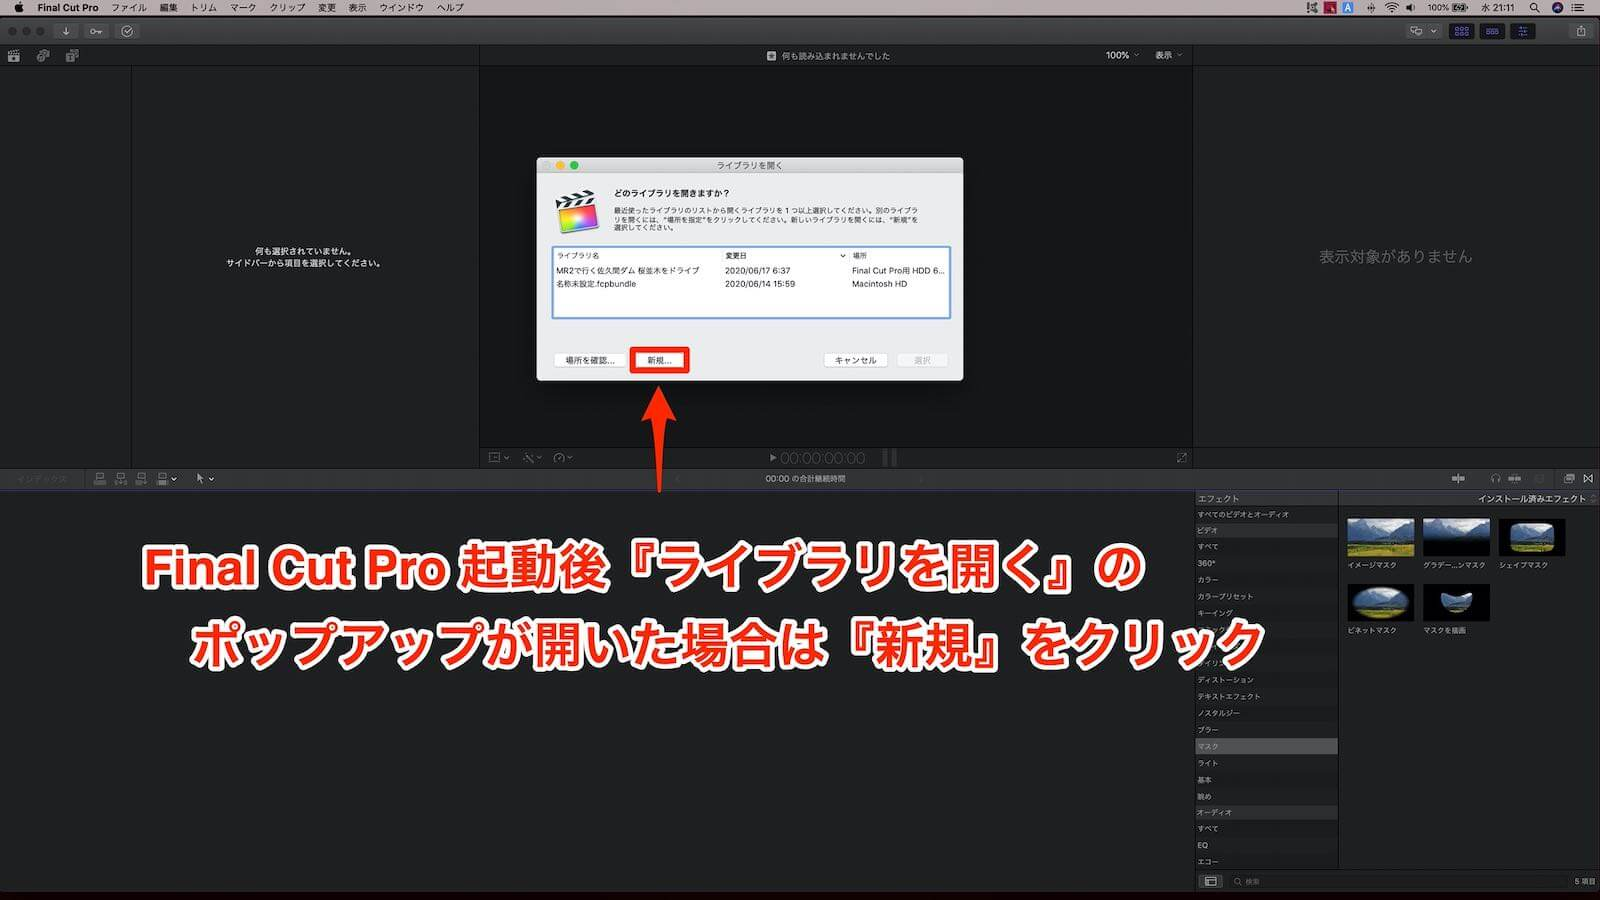 0232 Explain the basic usage of Final Cut Pro 13